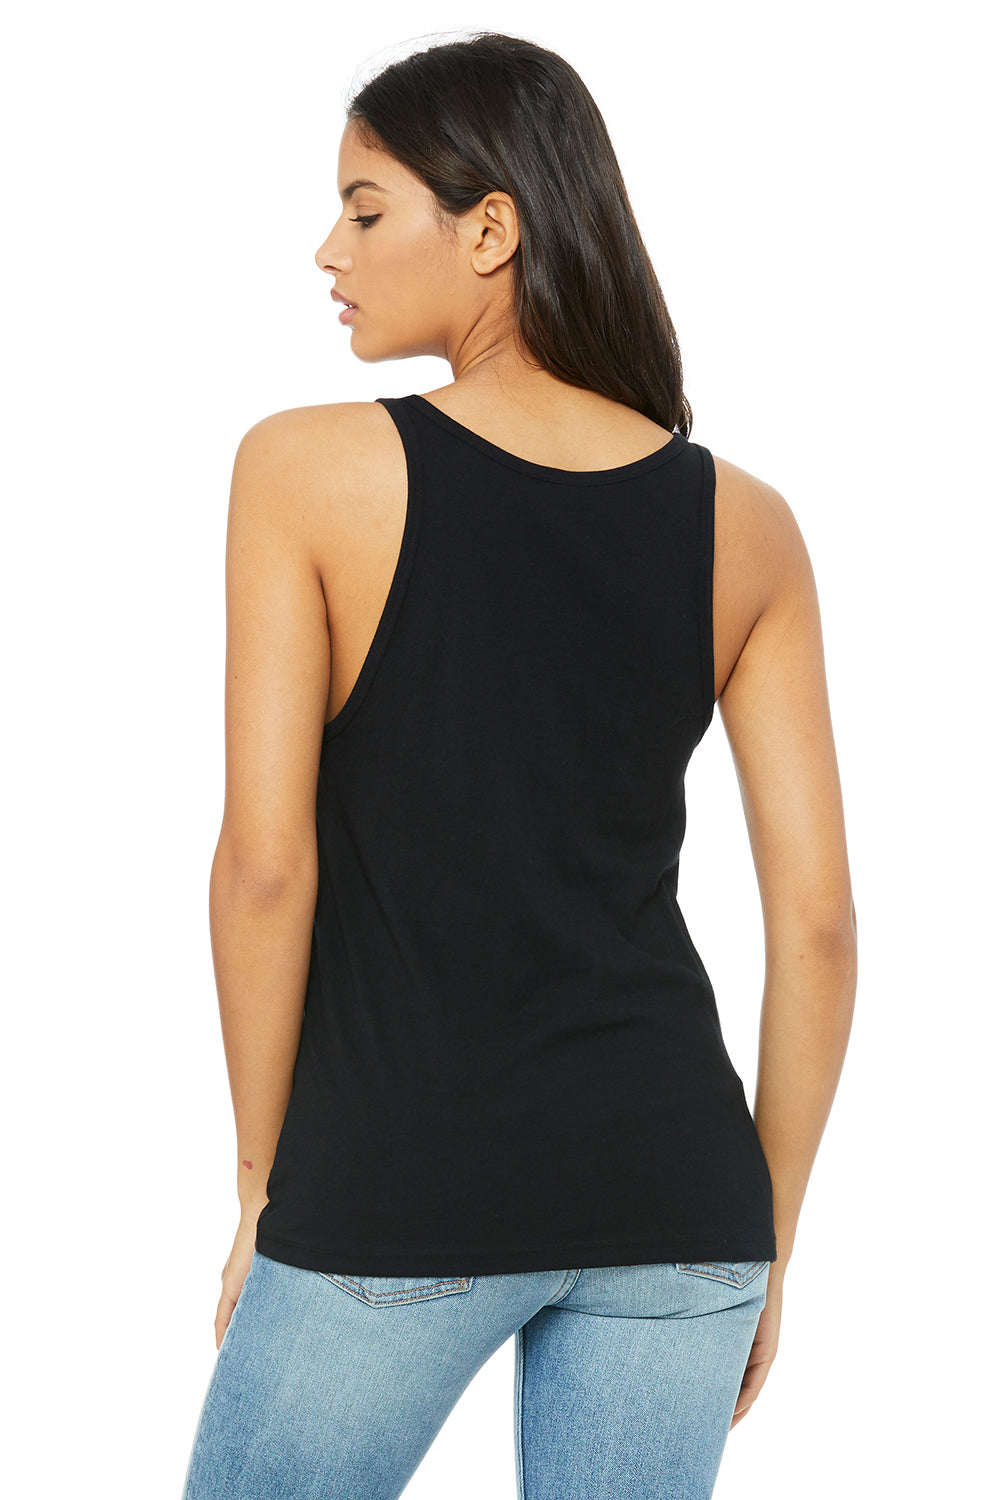 Bella + Canvas 6488 Womens Relaxed Jersey Tank Top Black Back